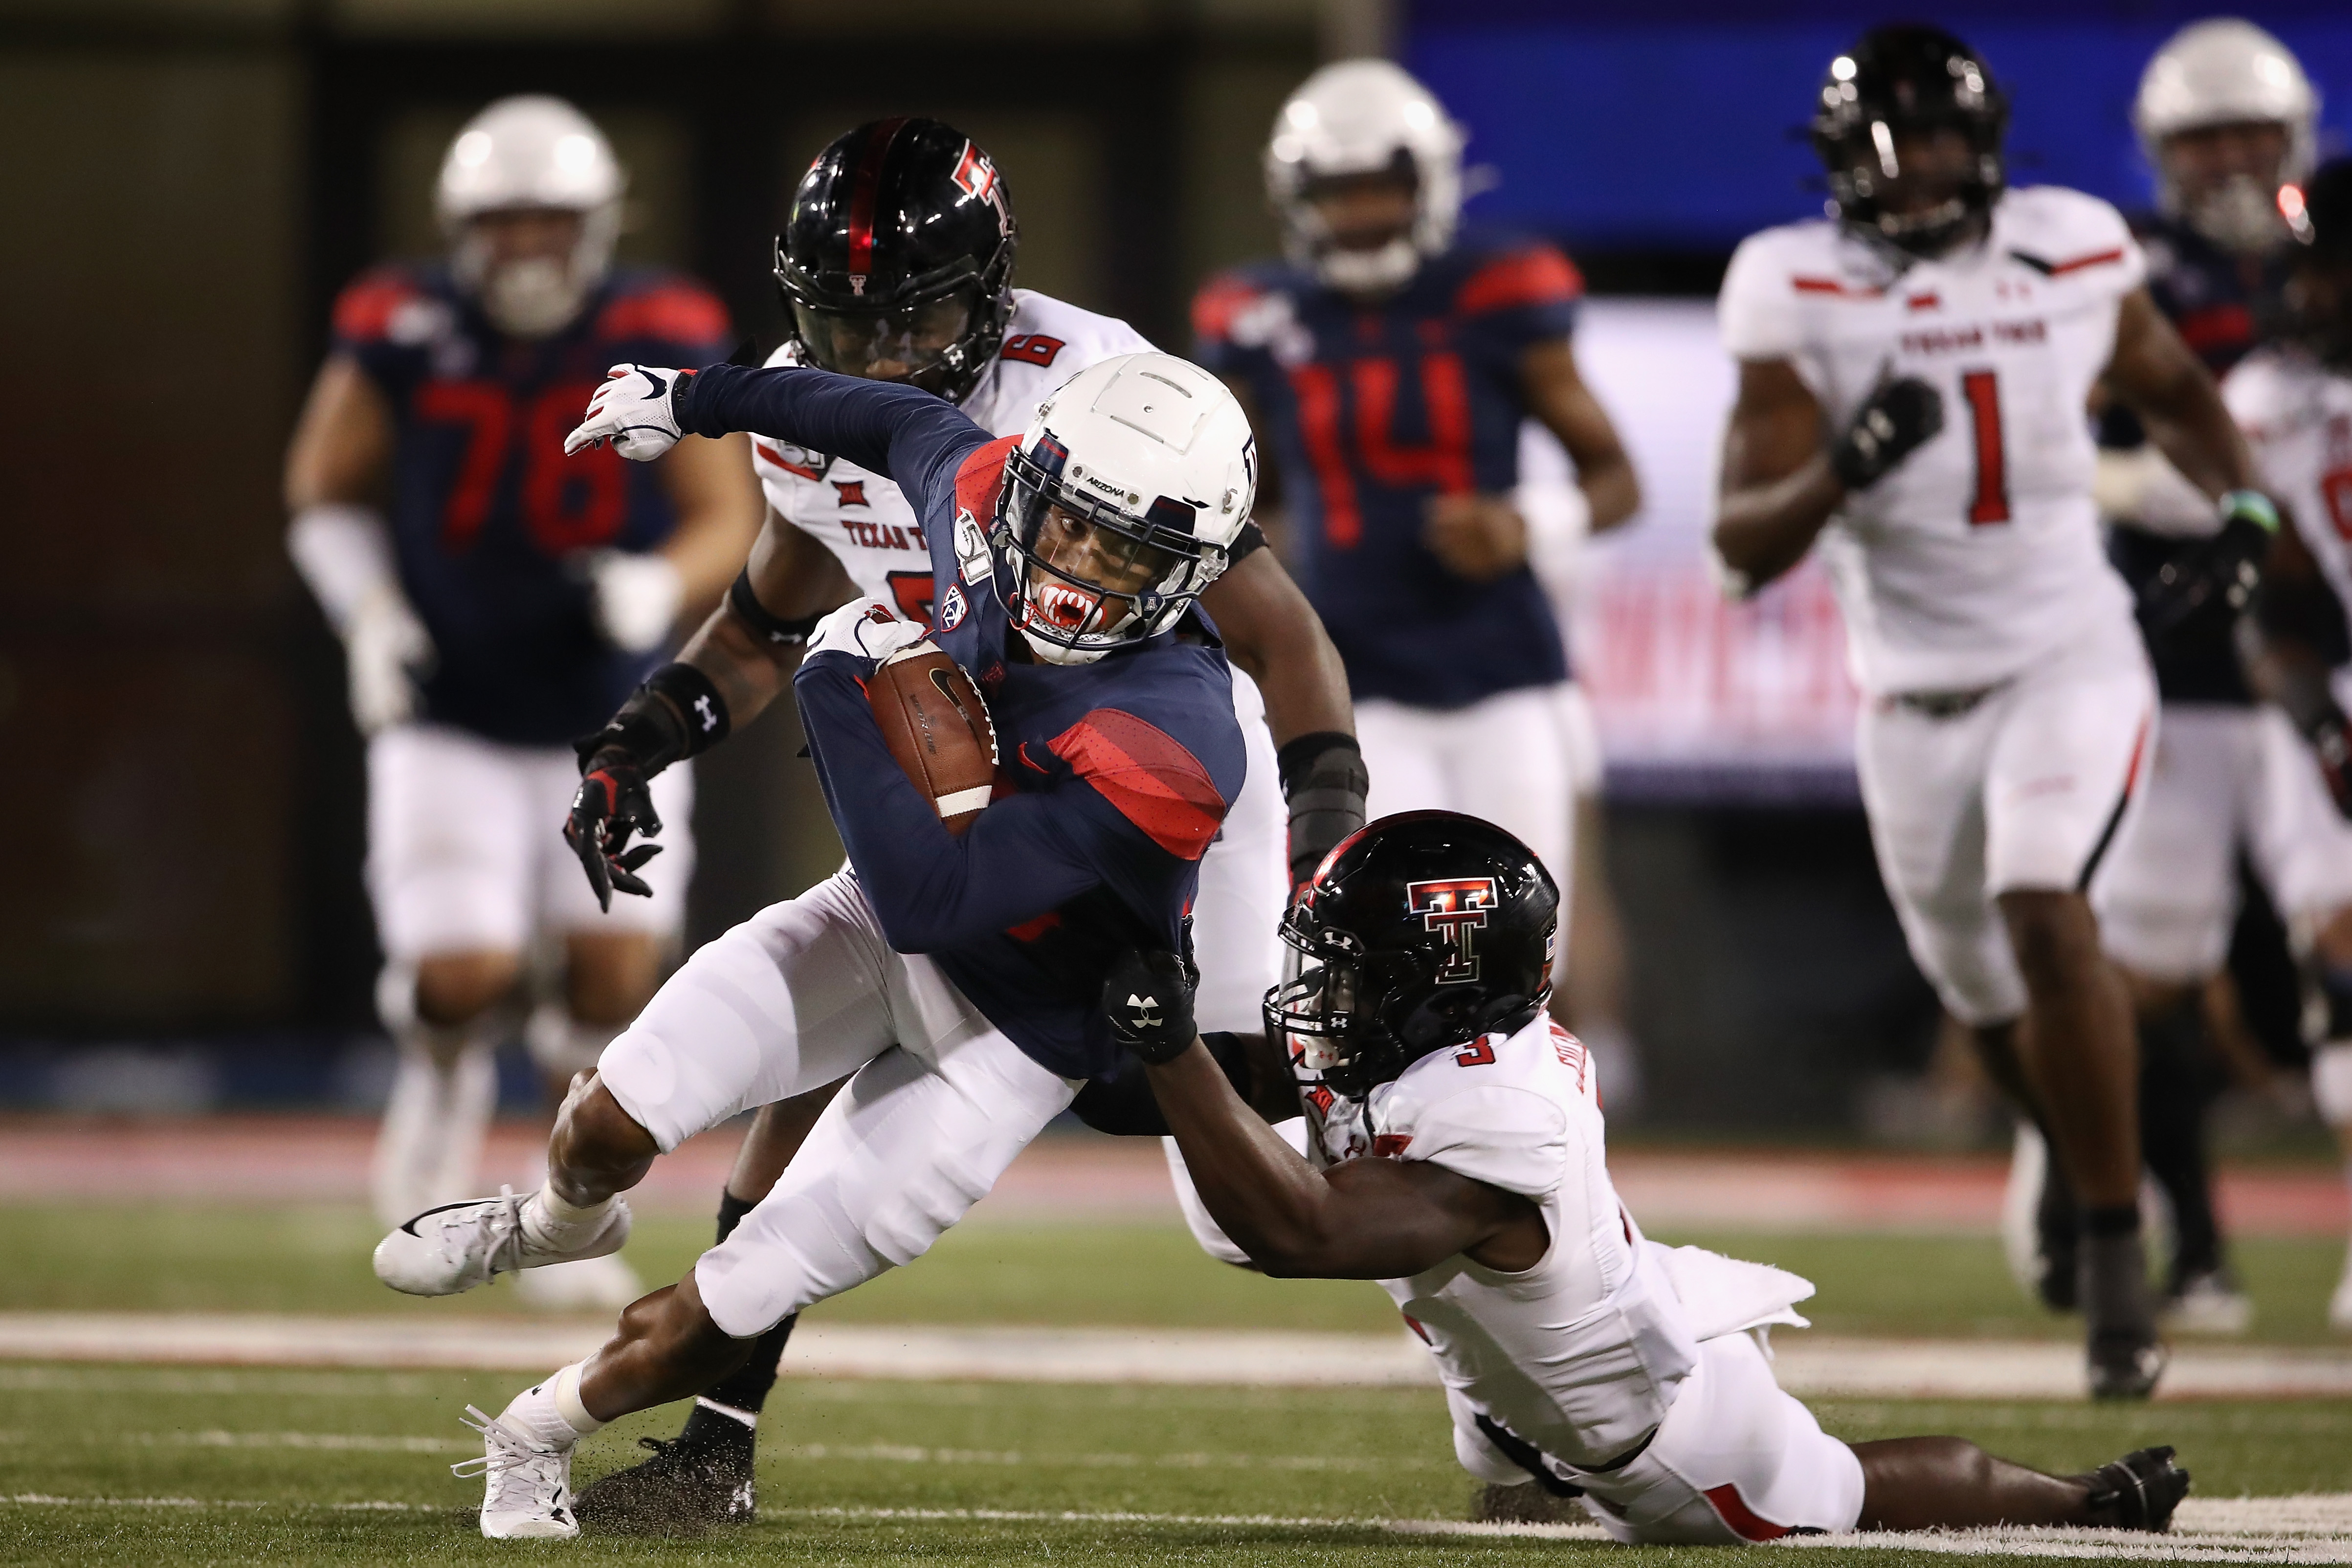 arizona-texas-tech-final-score-recap-college-football-2019-highlights-wildcats-red-raiders